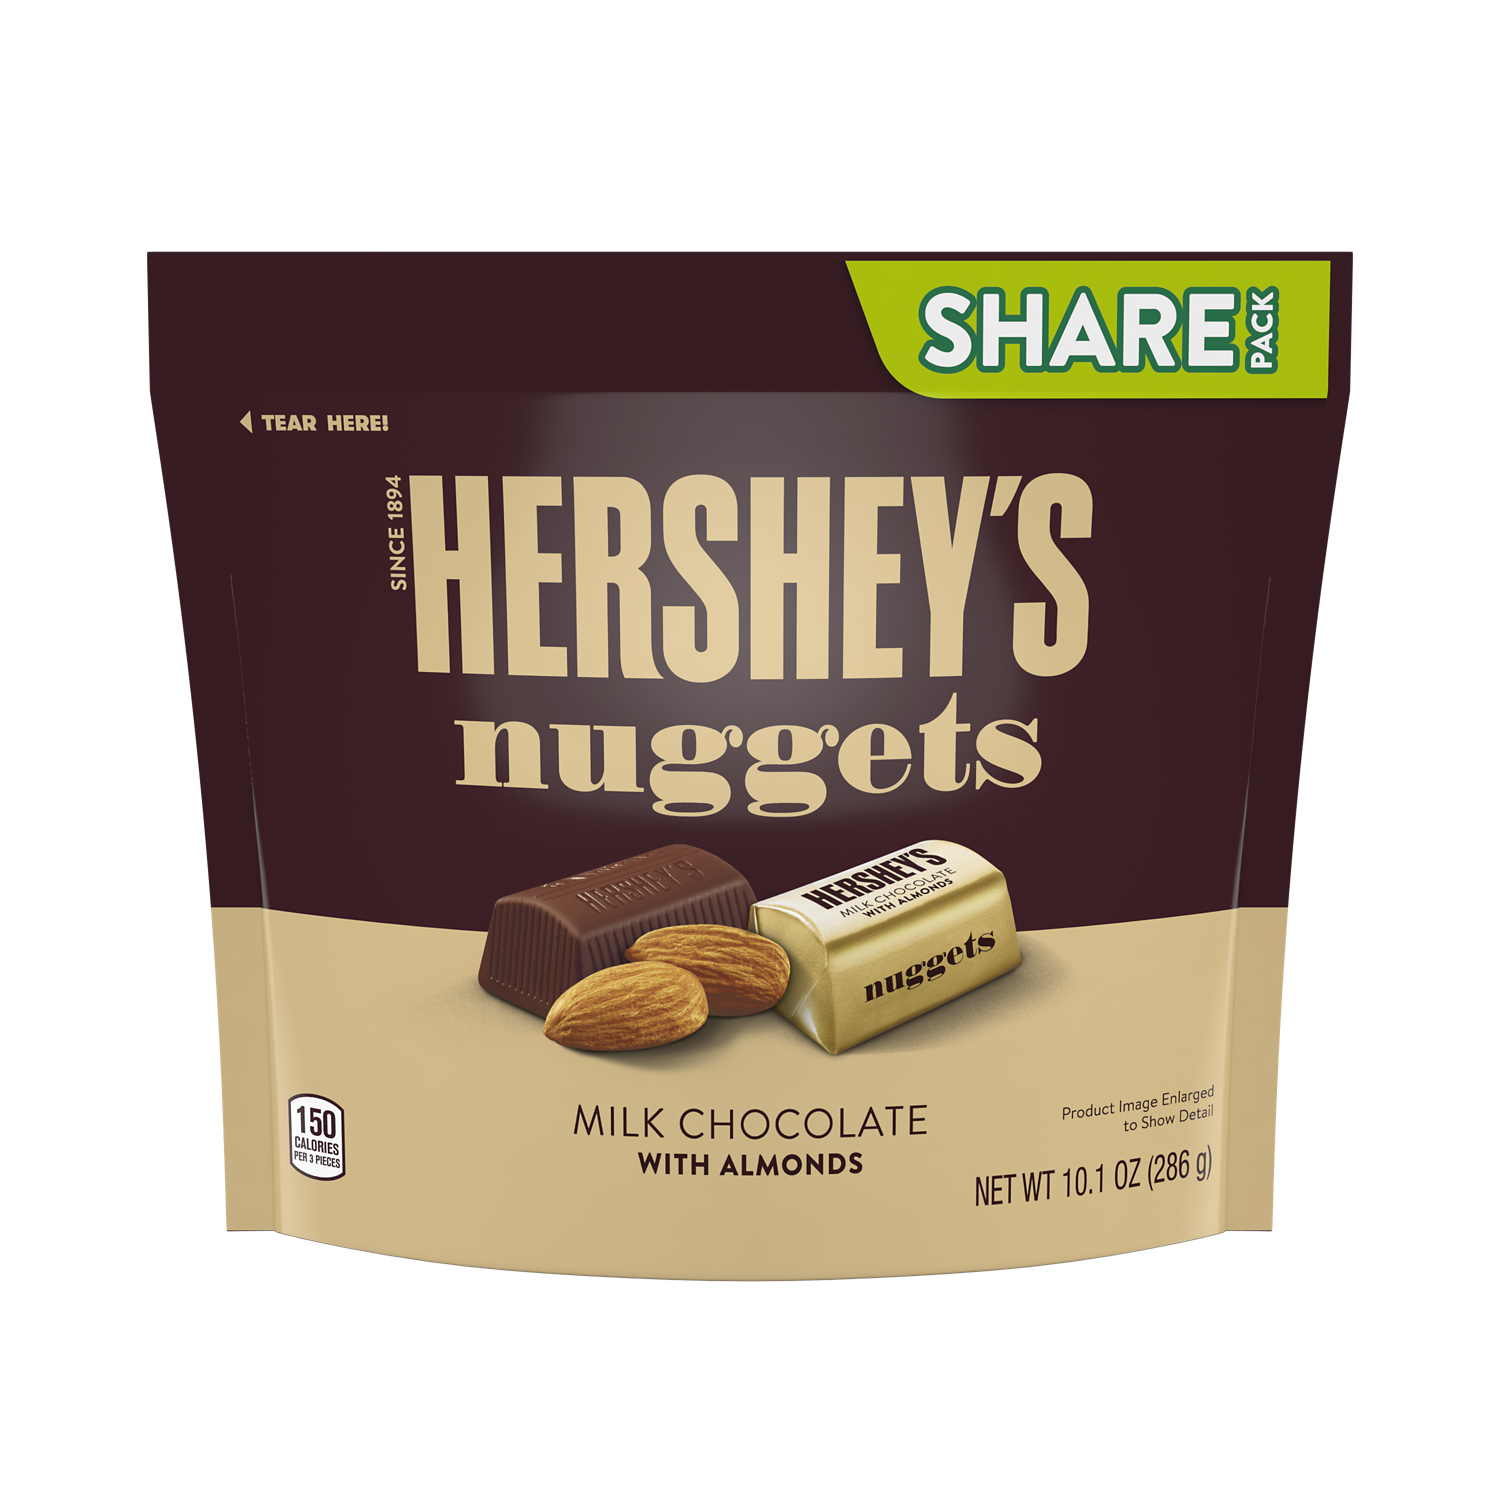 HERSHEY'S NUGGETS Milk Chocolate with Almonds Candy, 10.1 oz pack - Front of Package